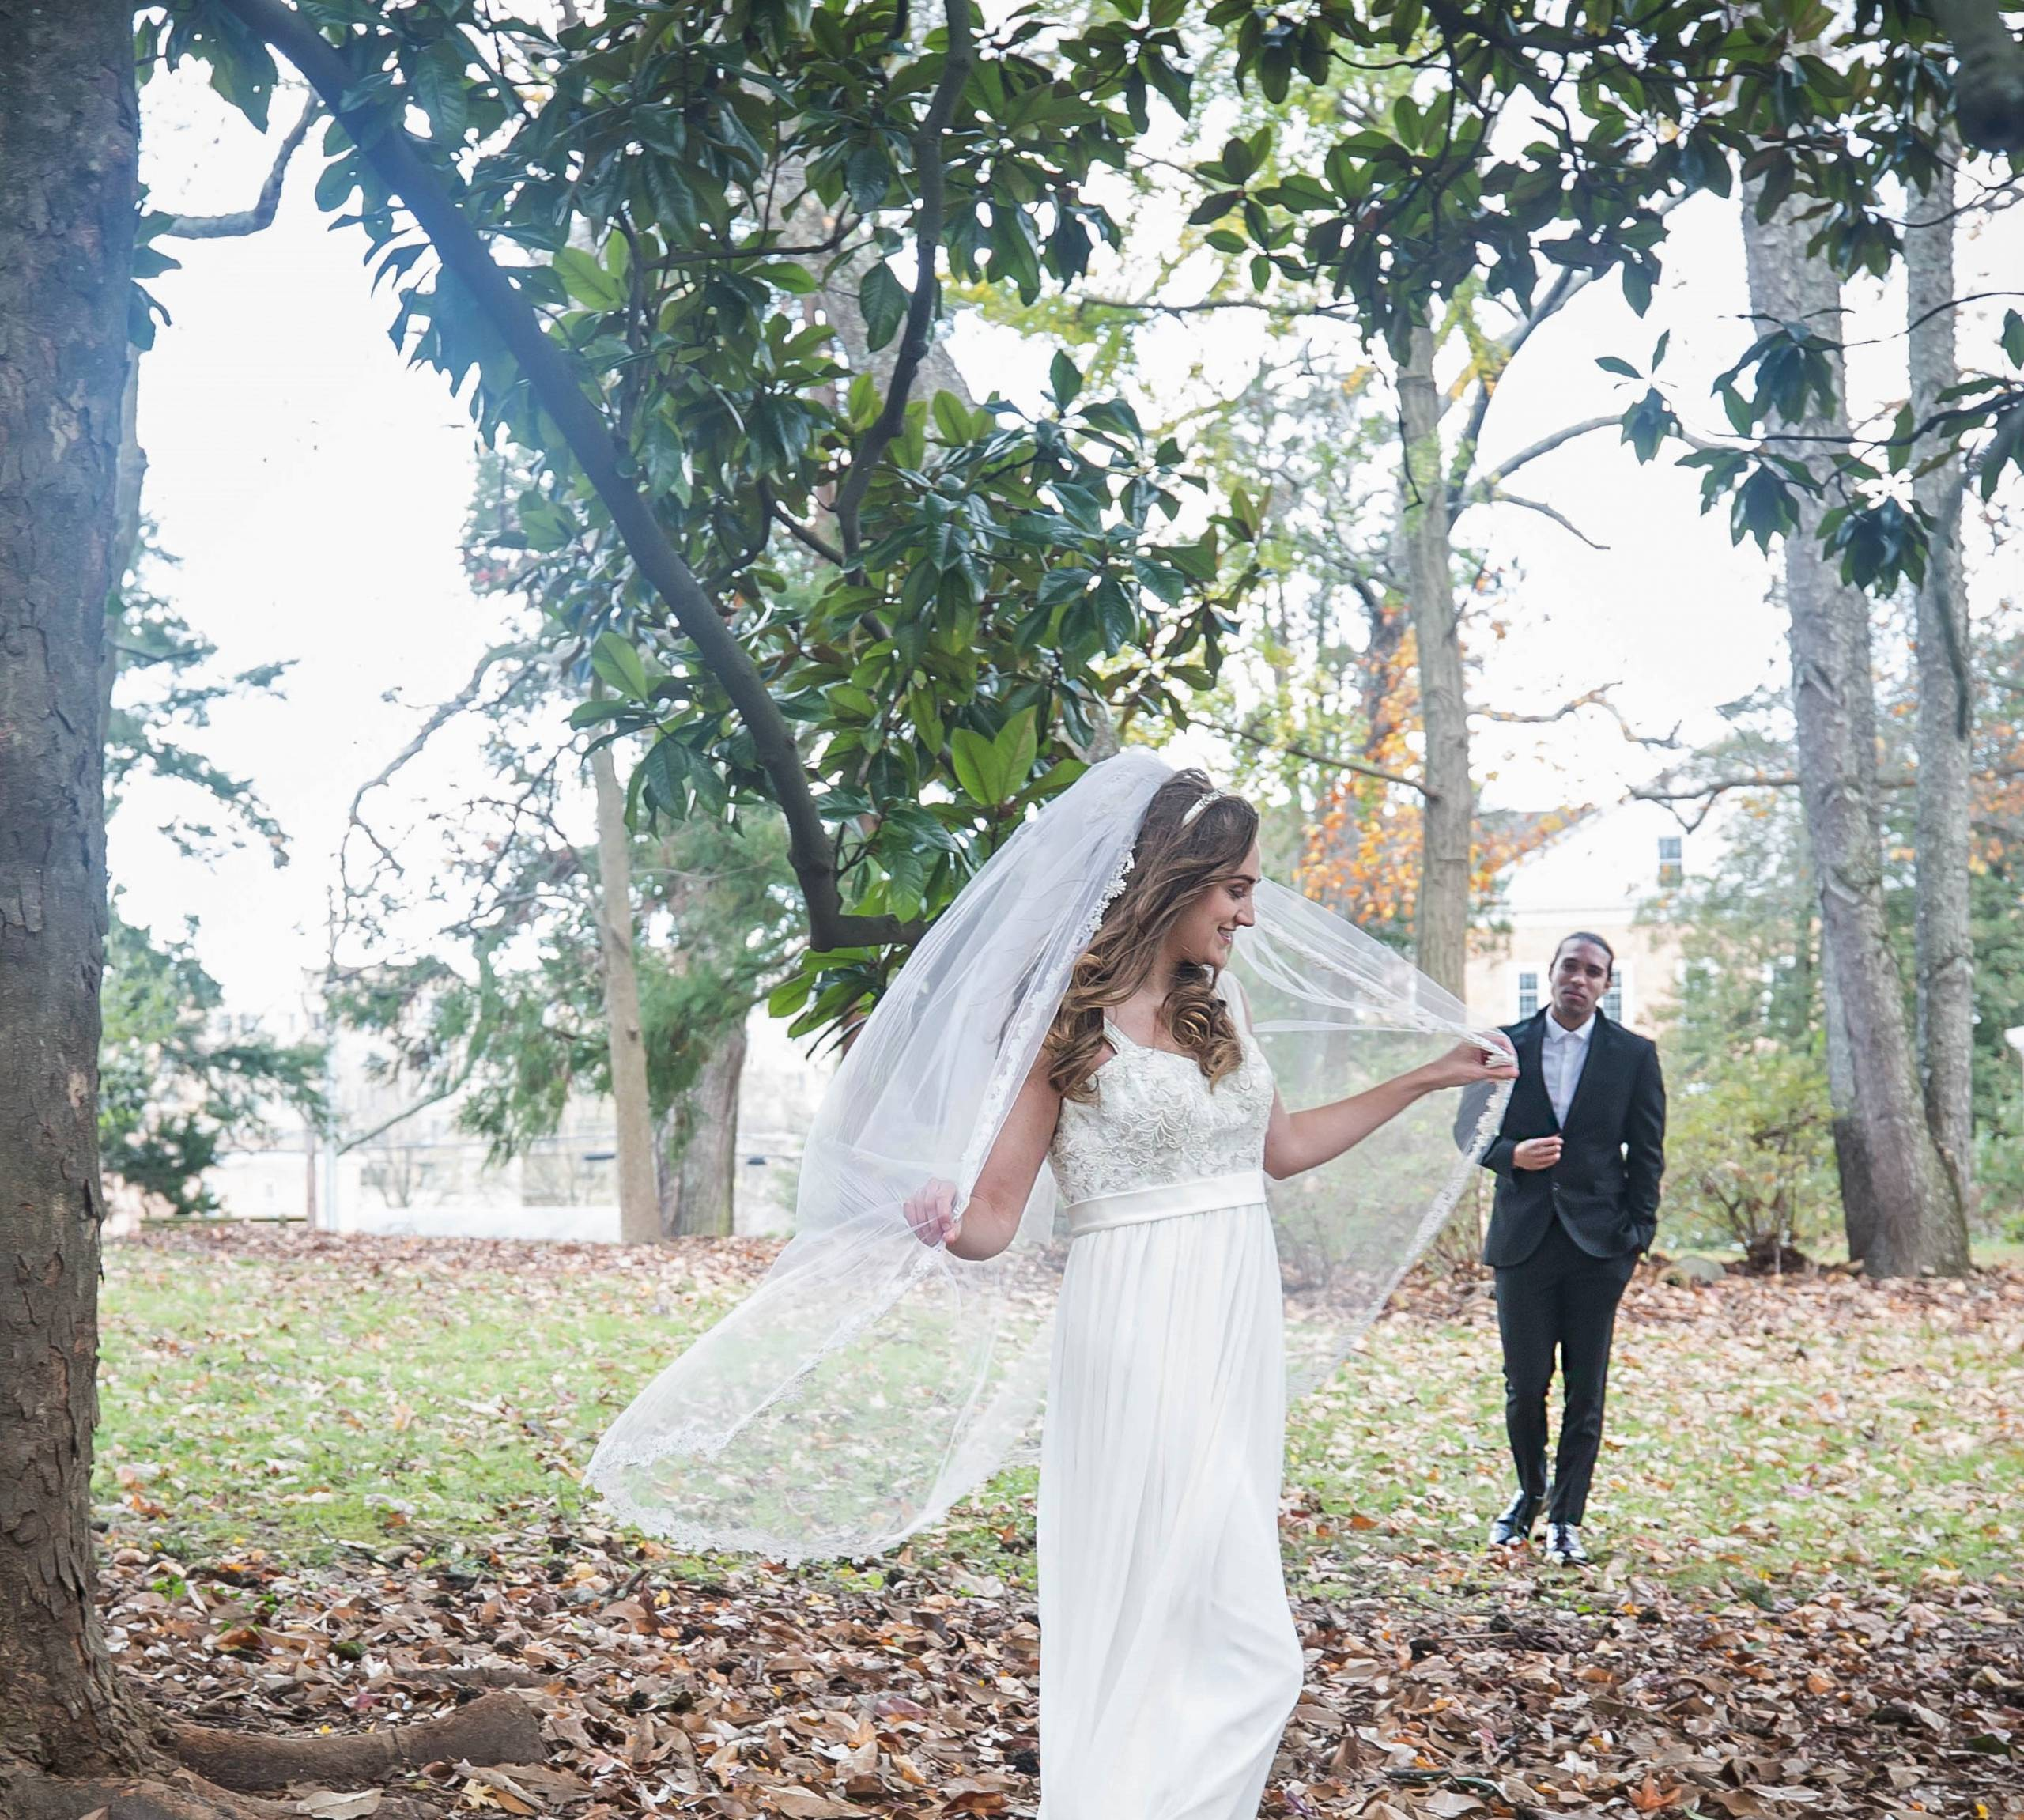 Covid Friendly Weddings Are Better Than Ever in 2021!